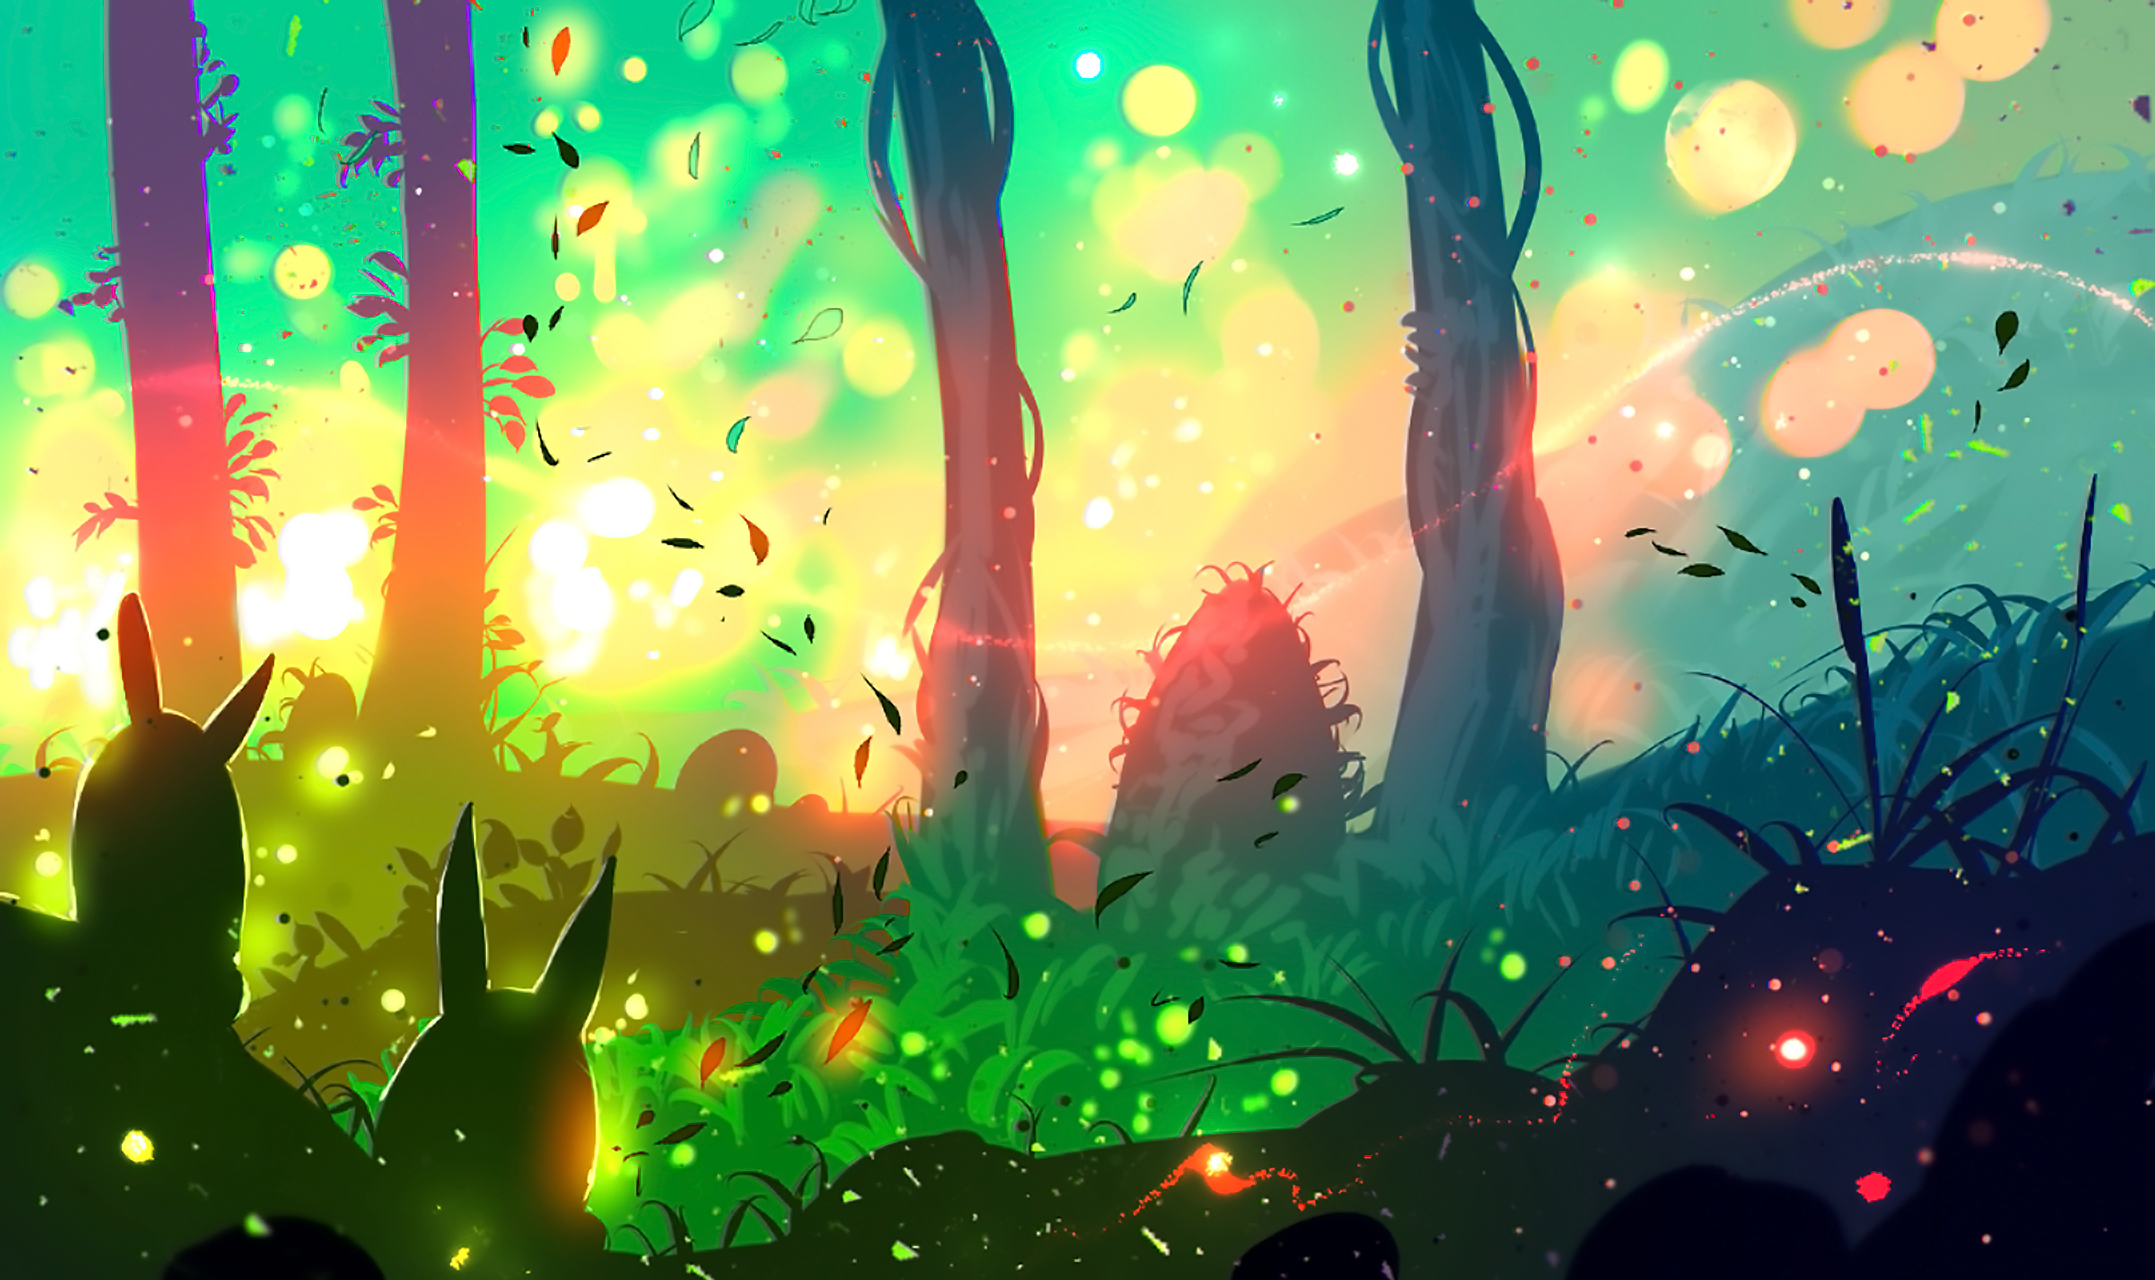 Bunny Forest Sunset Sunshine 2155x1280